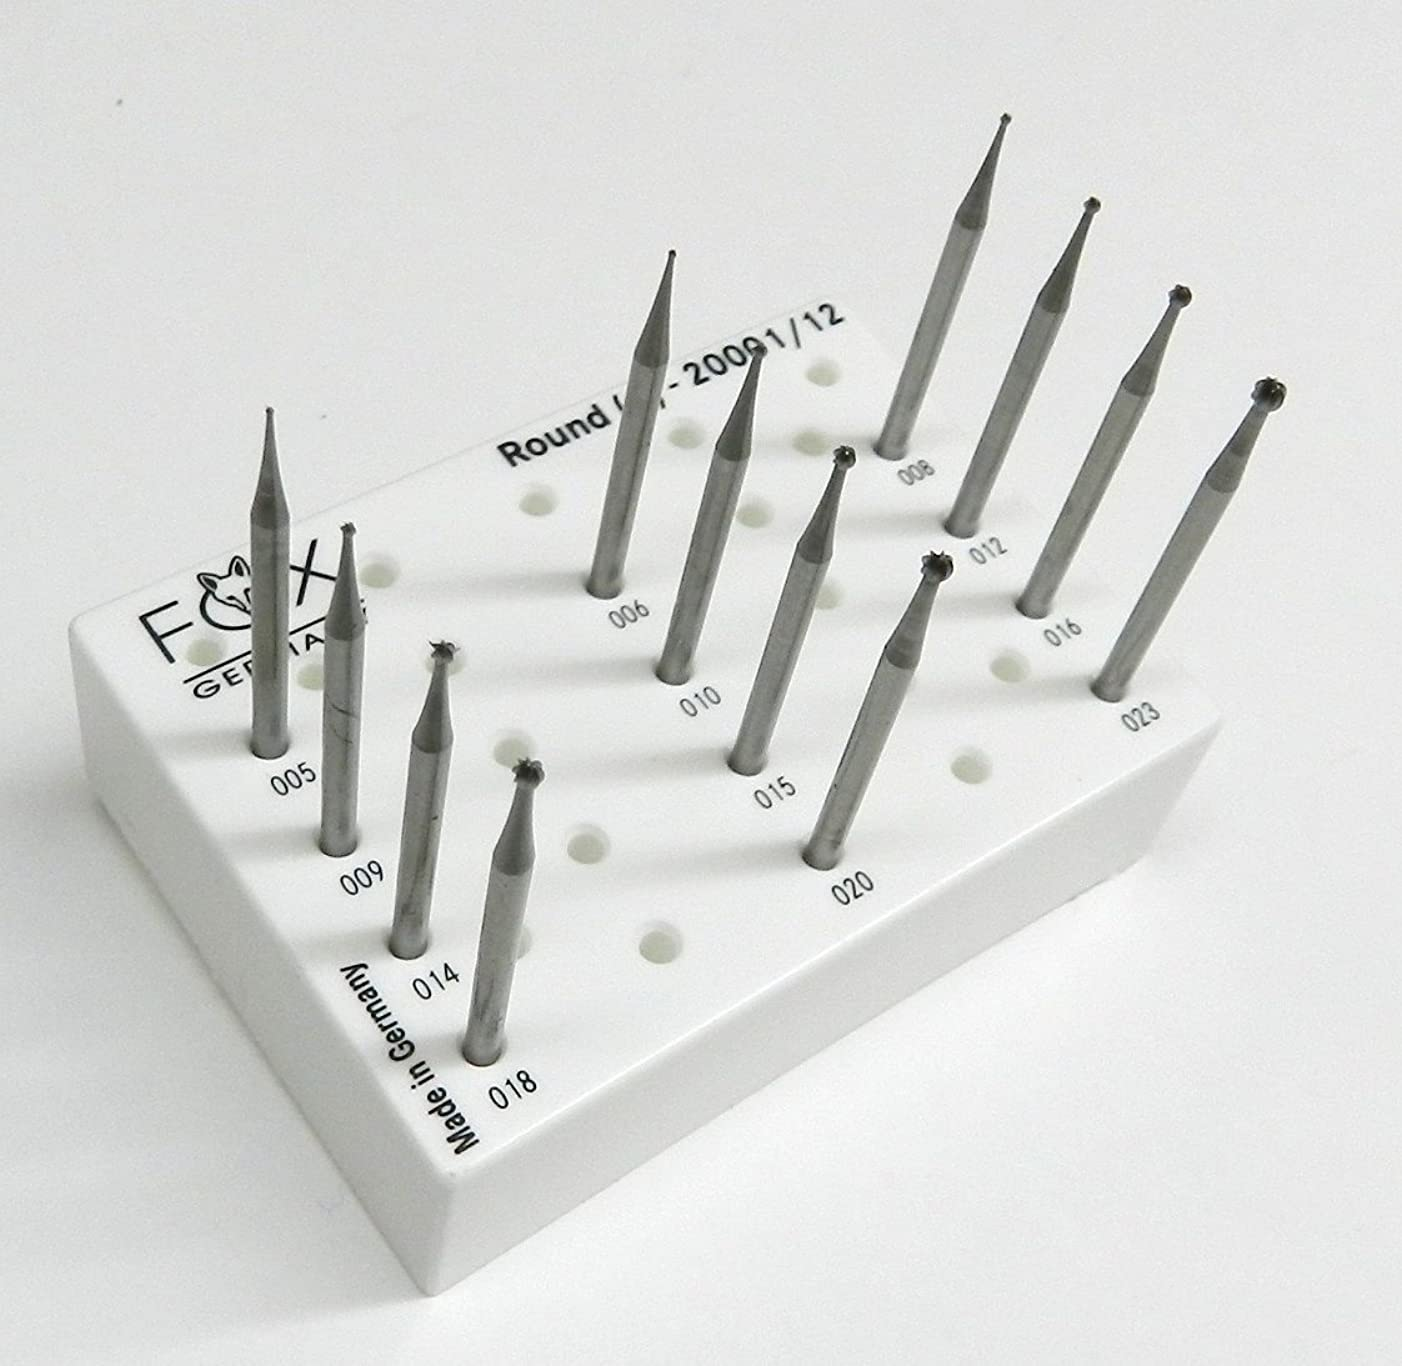 JEWELRY MAKING BURS SET ROUND SHAPE BALL BURS JEWELERS FIG1 005-023 FOX GERMANY (E 4)